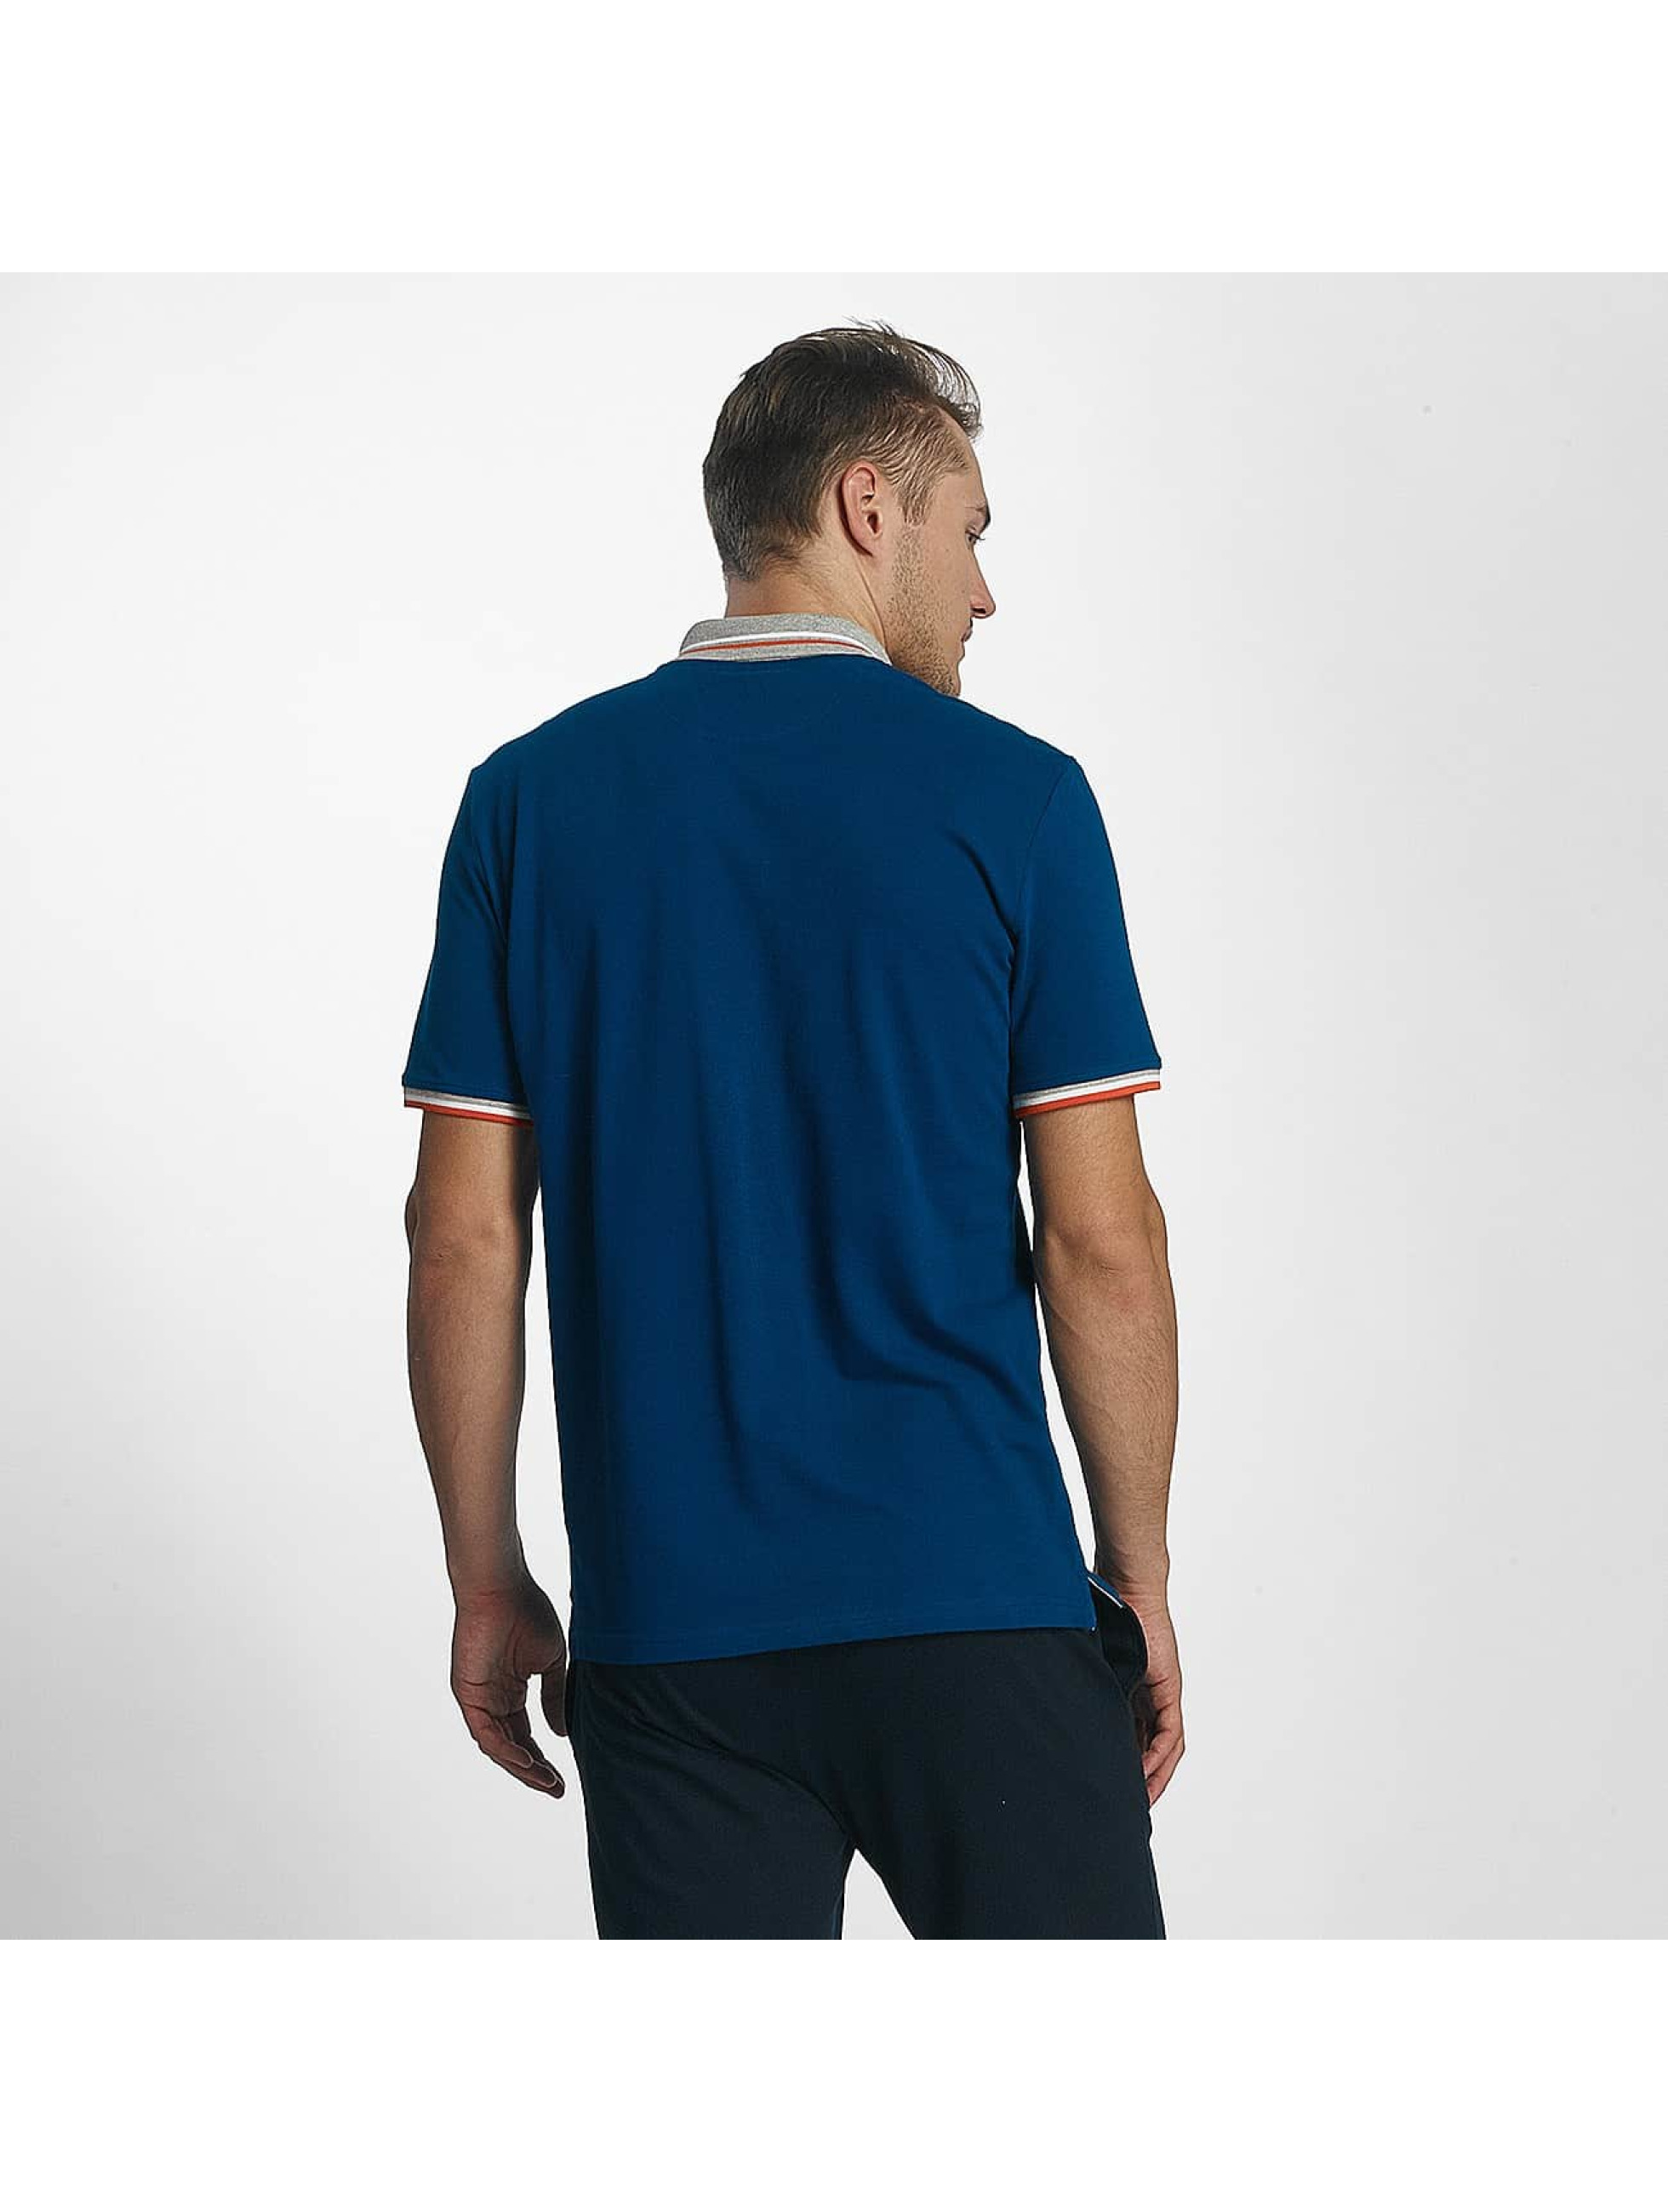 Champion Athletics poloshirt Basic blauw